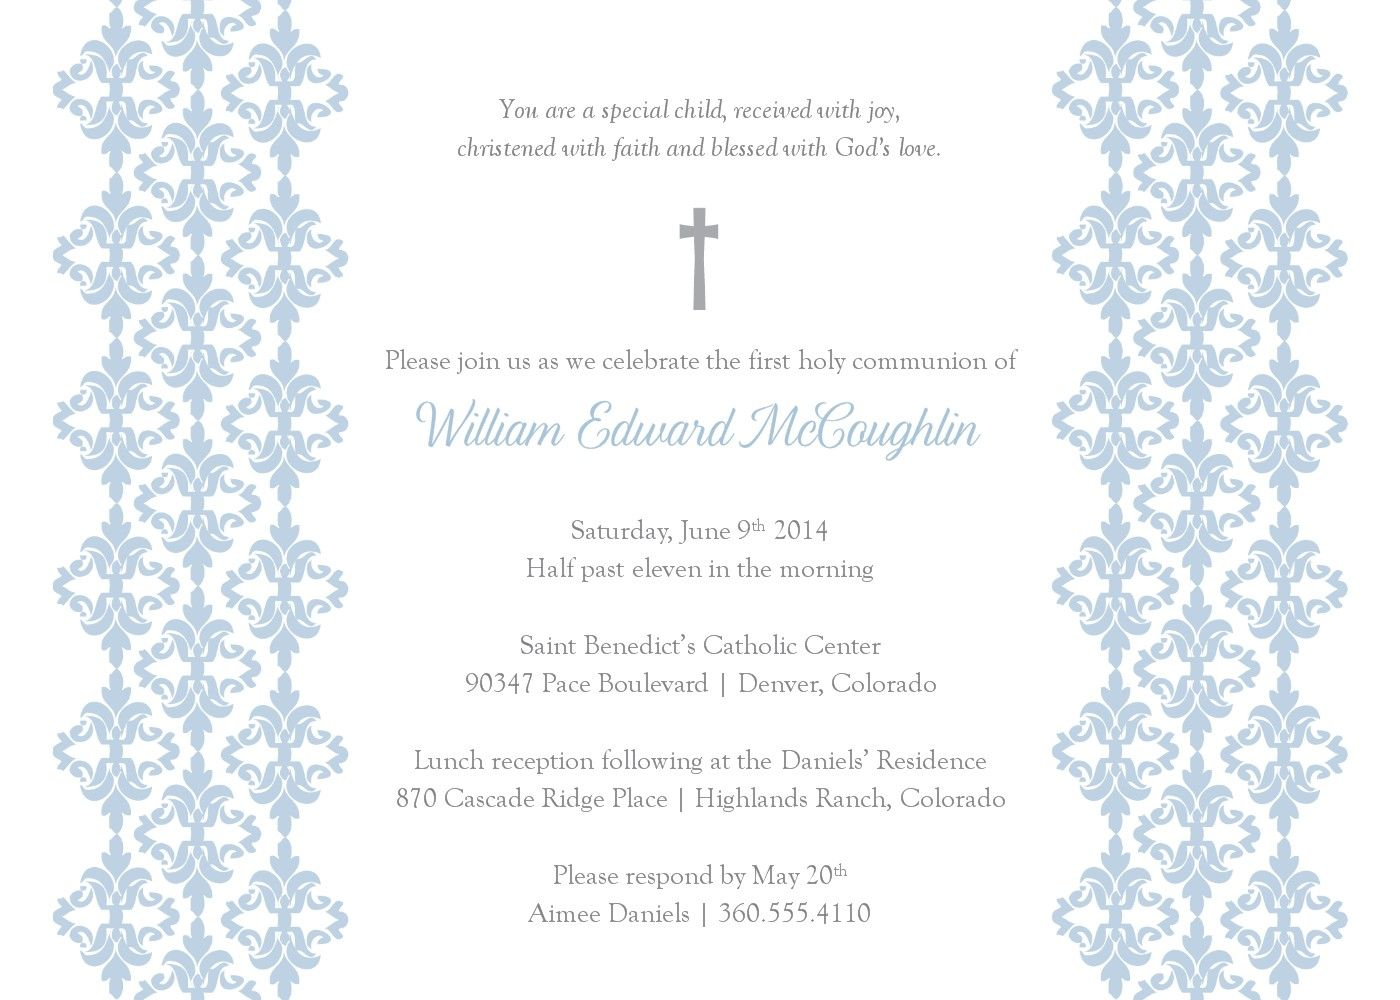 Baptism invitation template free download baptism pinterest baptism invitation template free download stopboris Gallery